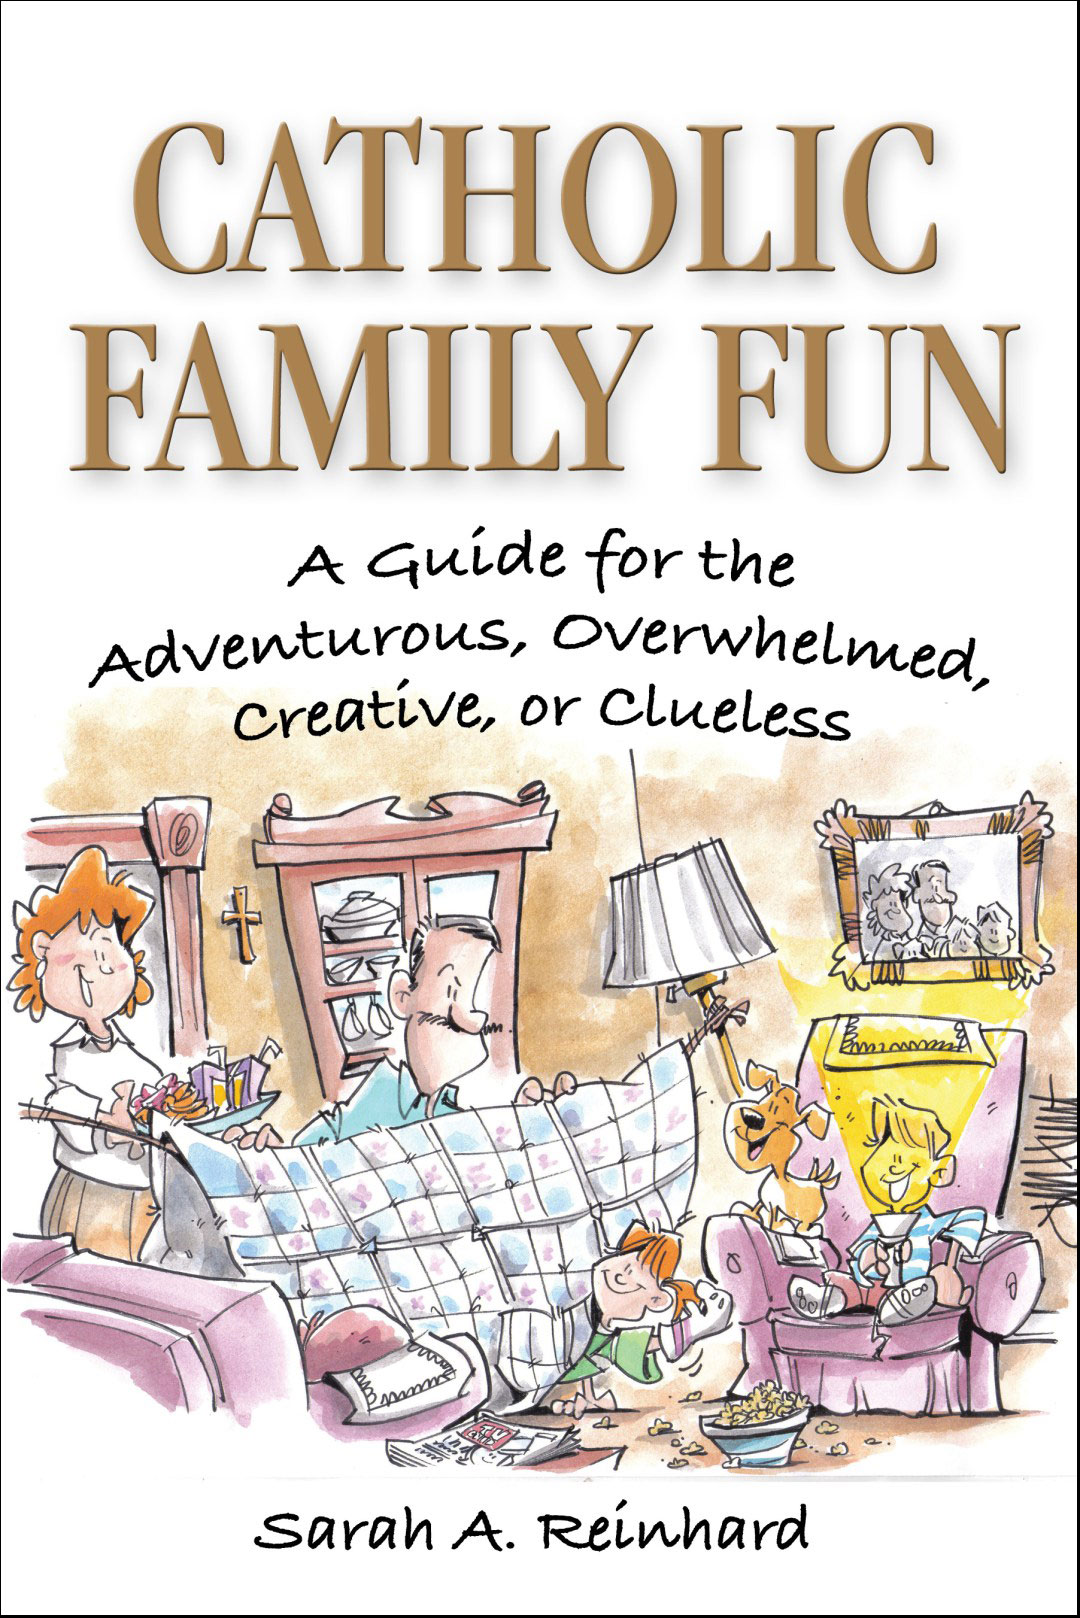 Catholic Family Fun by Sarah A. Reinhard